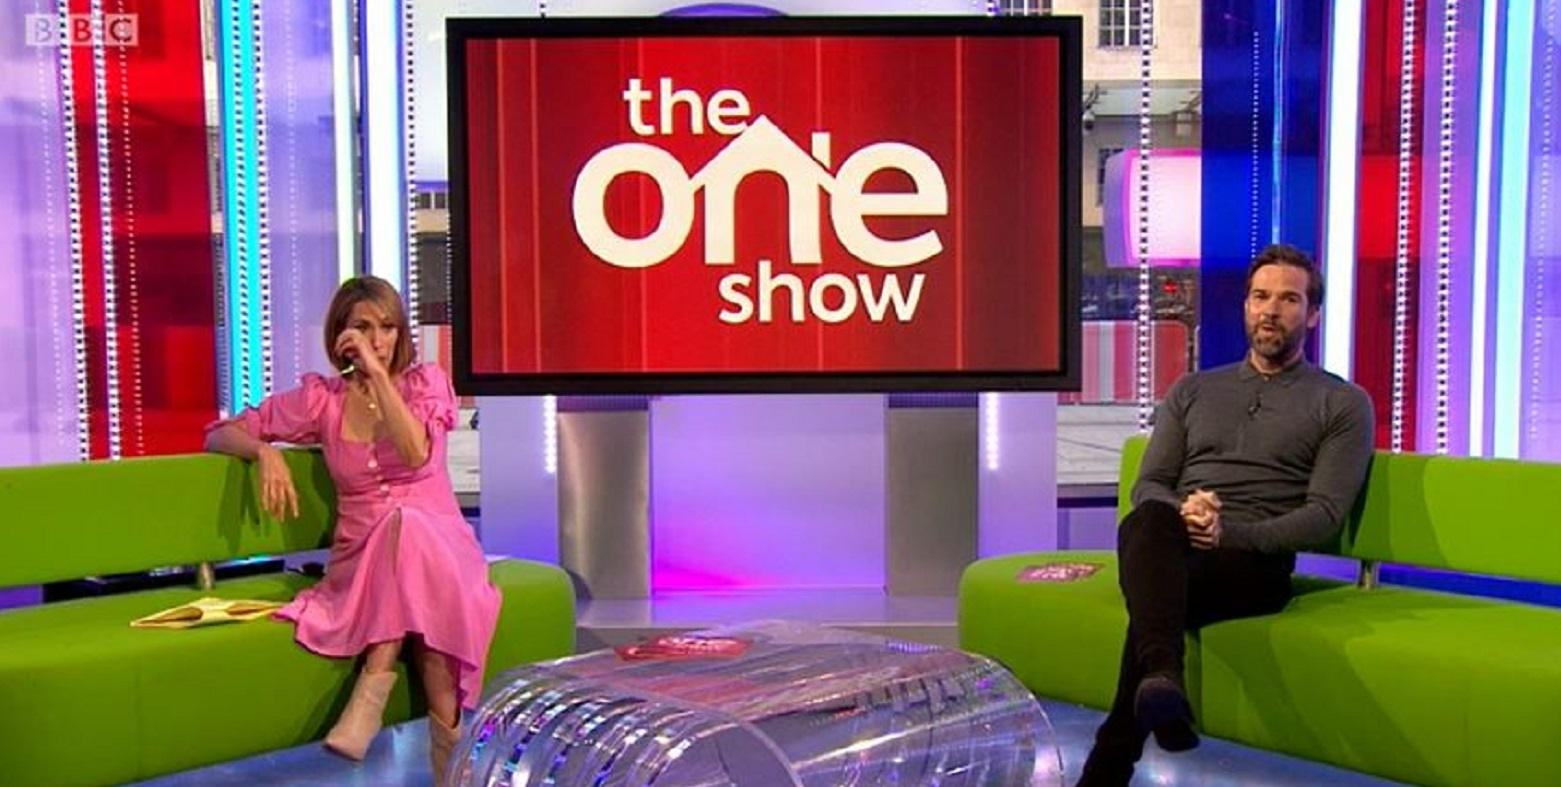 The One Show: Alex Jones reduced to tears as guest Christopher Eccleston performs NHS poem tribute